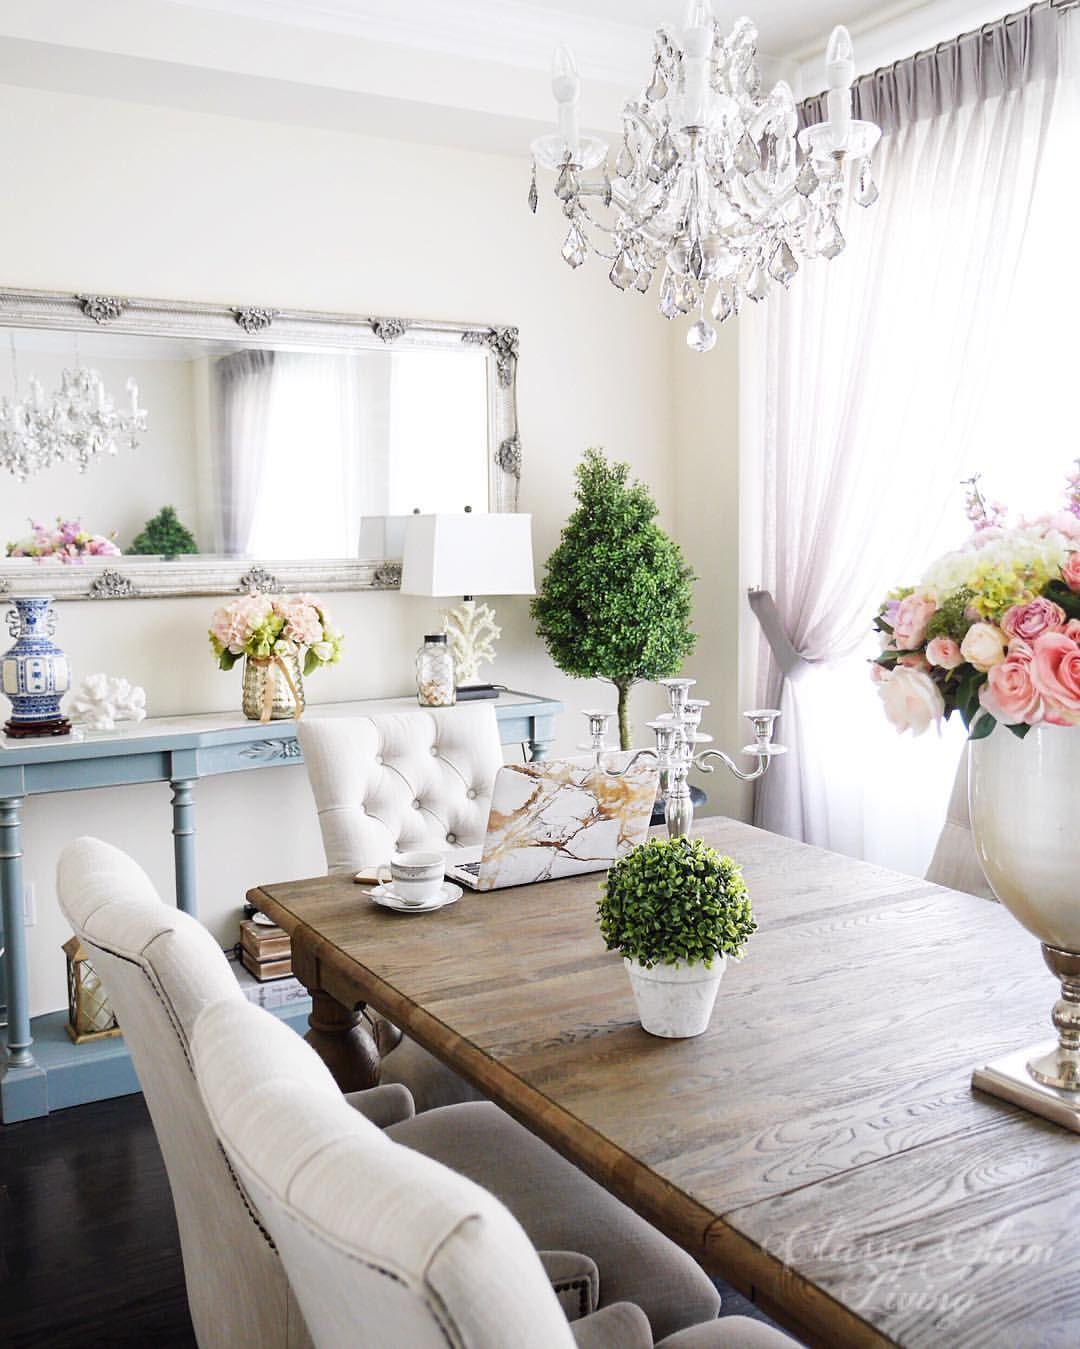 Dining Room Styling Decor Restoration Hardware Grand Bare Table Tufted Chairs Console Fl Arrangement Cly Glam Living